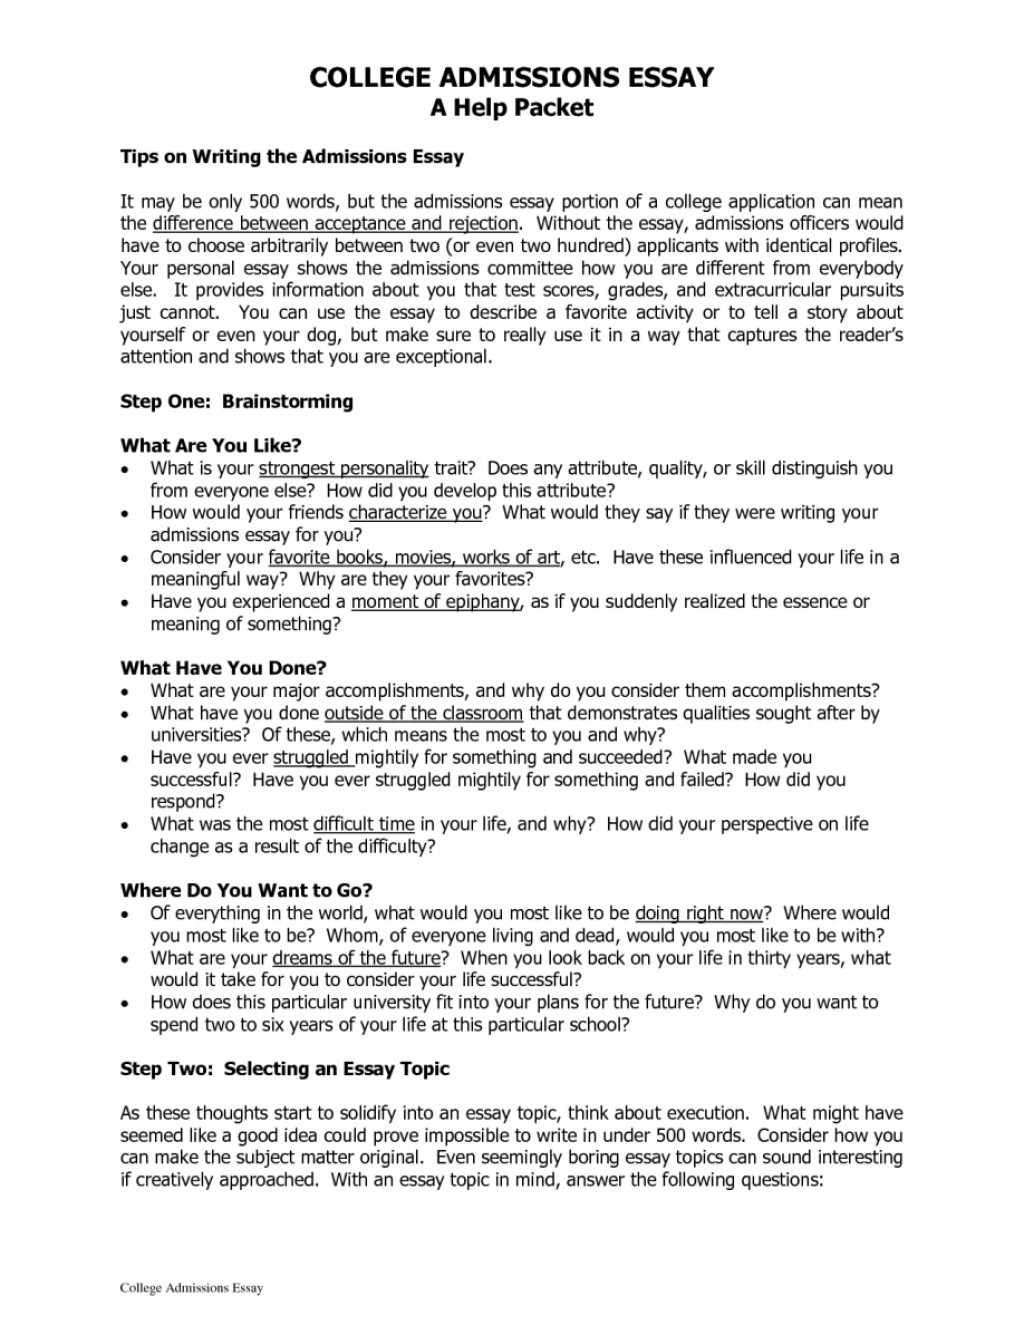 003 College Entry Essay Cover Letter Example Of Personal For Application Good Statement Applications Sa What Makes Best How To Write Examples Essays Amazing Admissions Tips 12 Admission That Worked Large